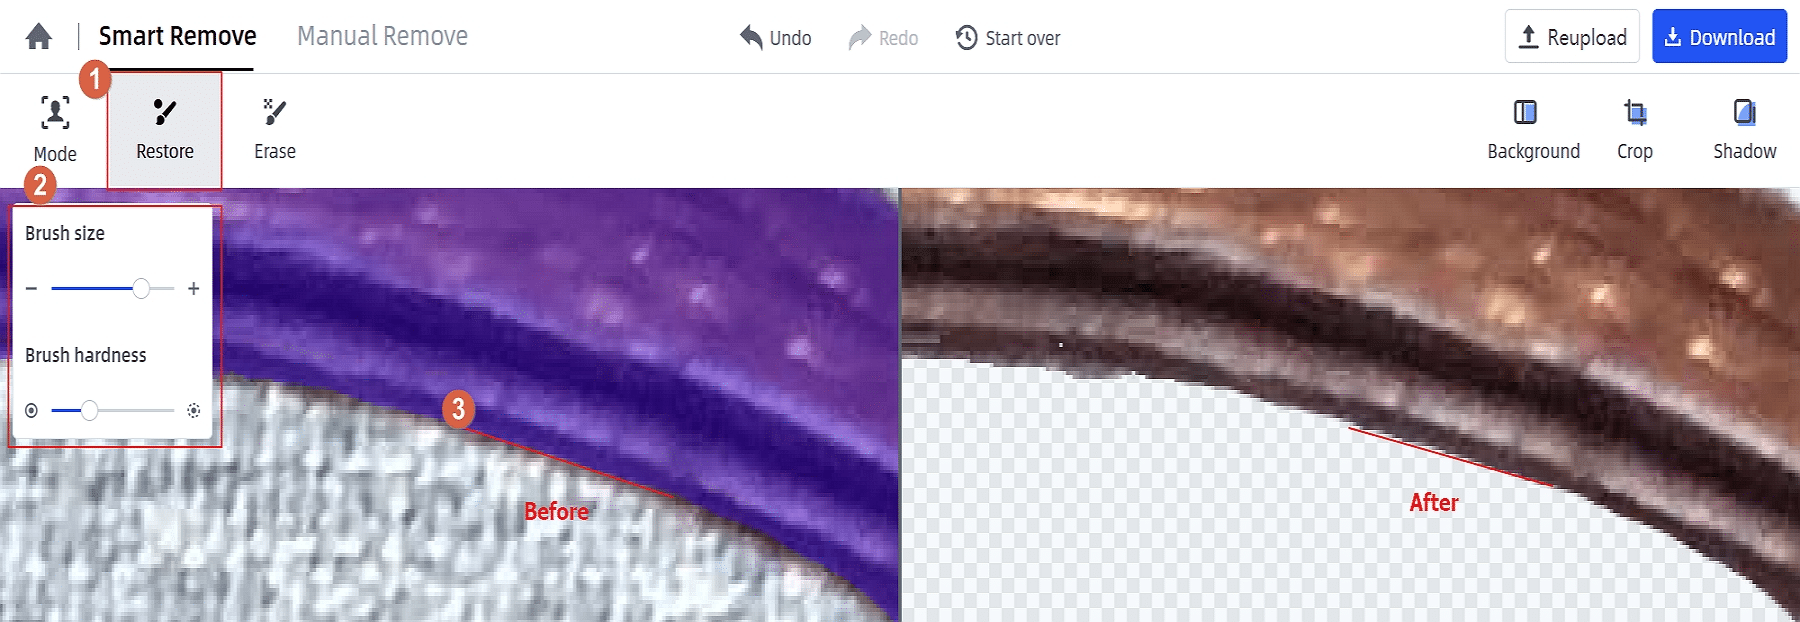 how-to-remove-background-automatically-fococlipping-restore-tool.png